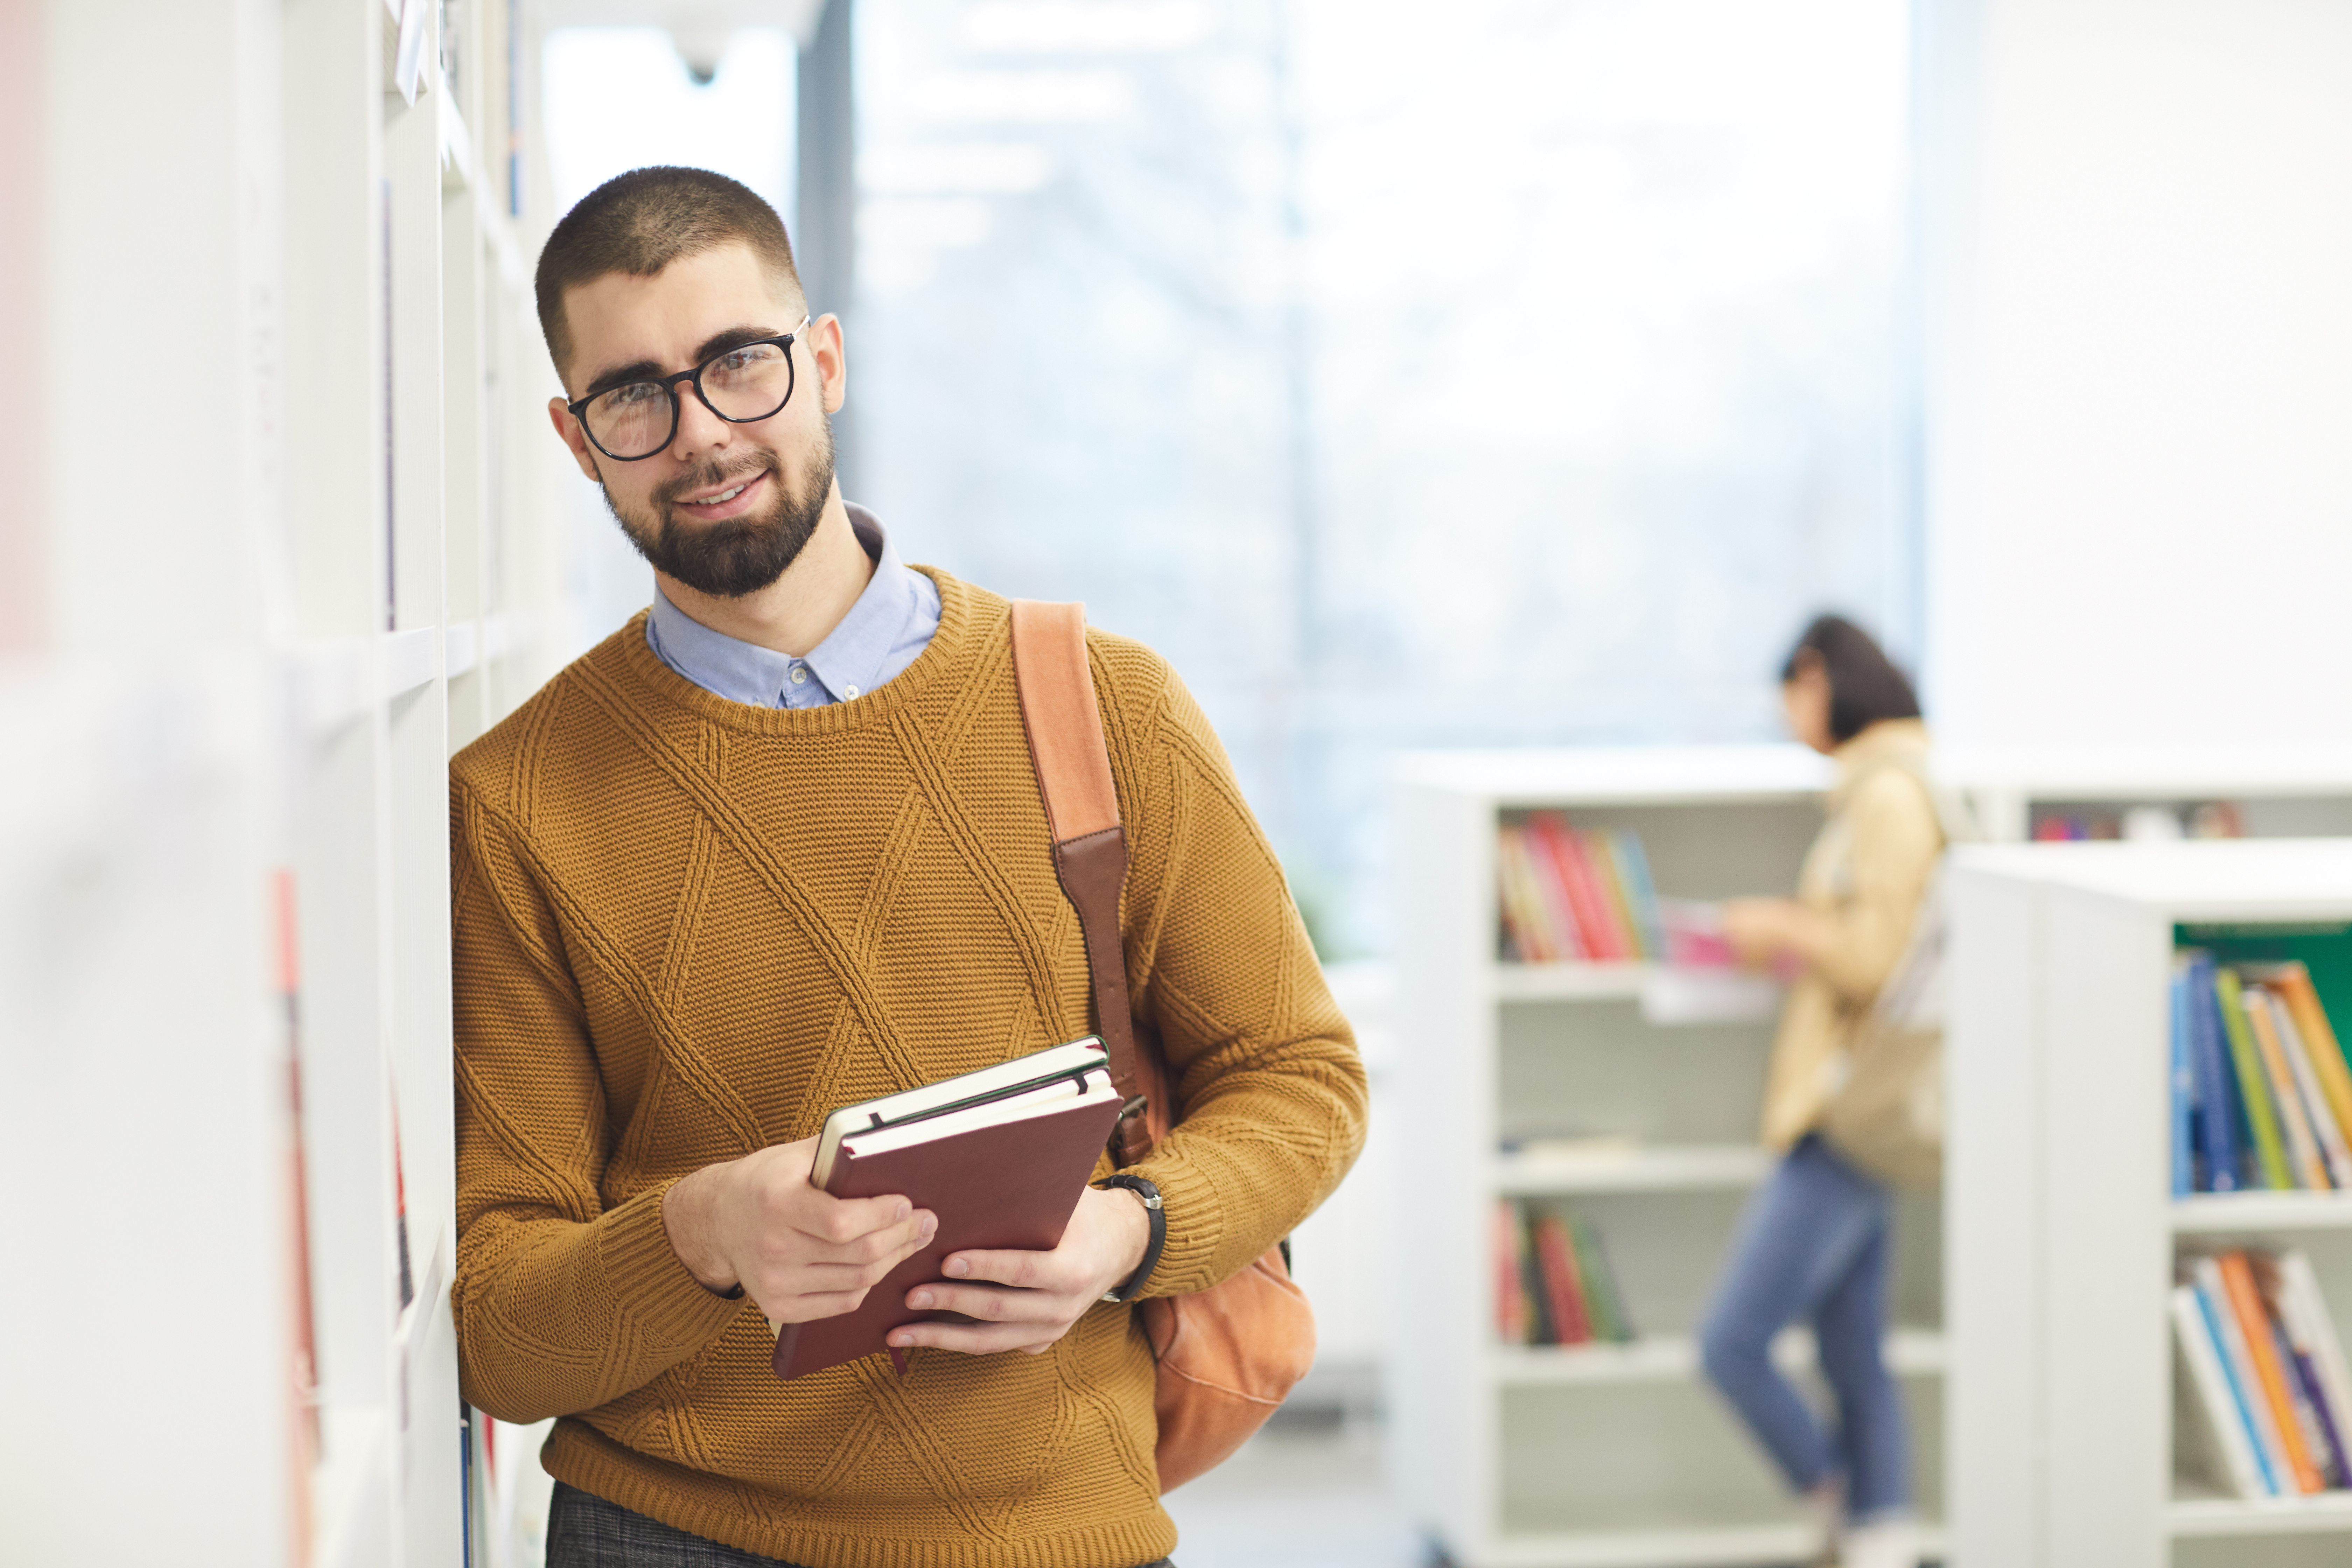 smiling-adult-student-posing-in-library-